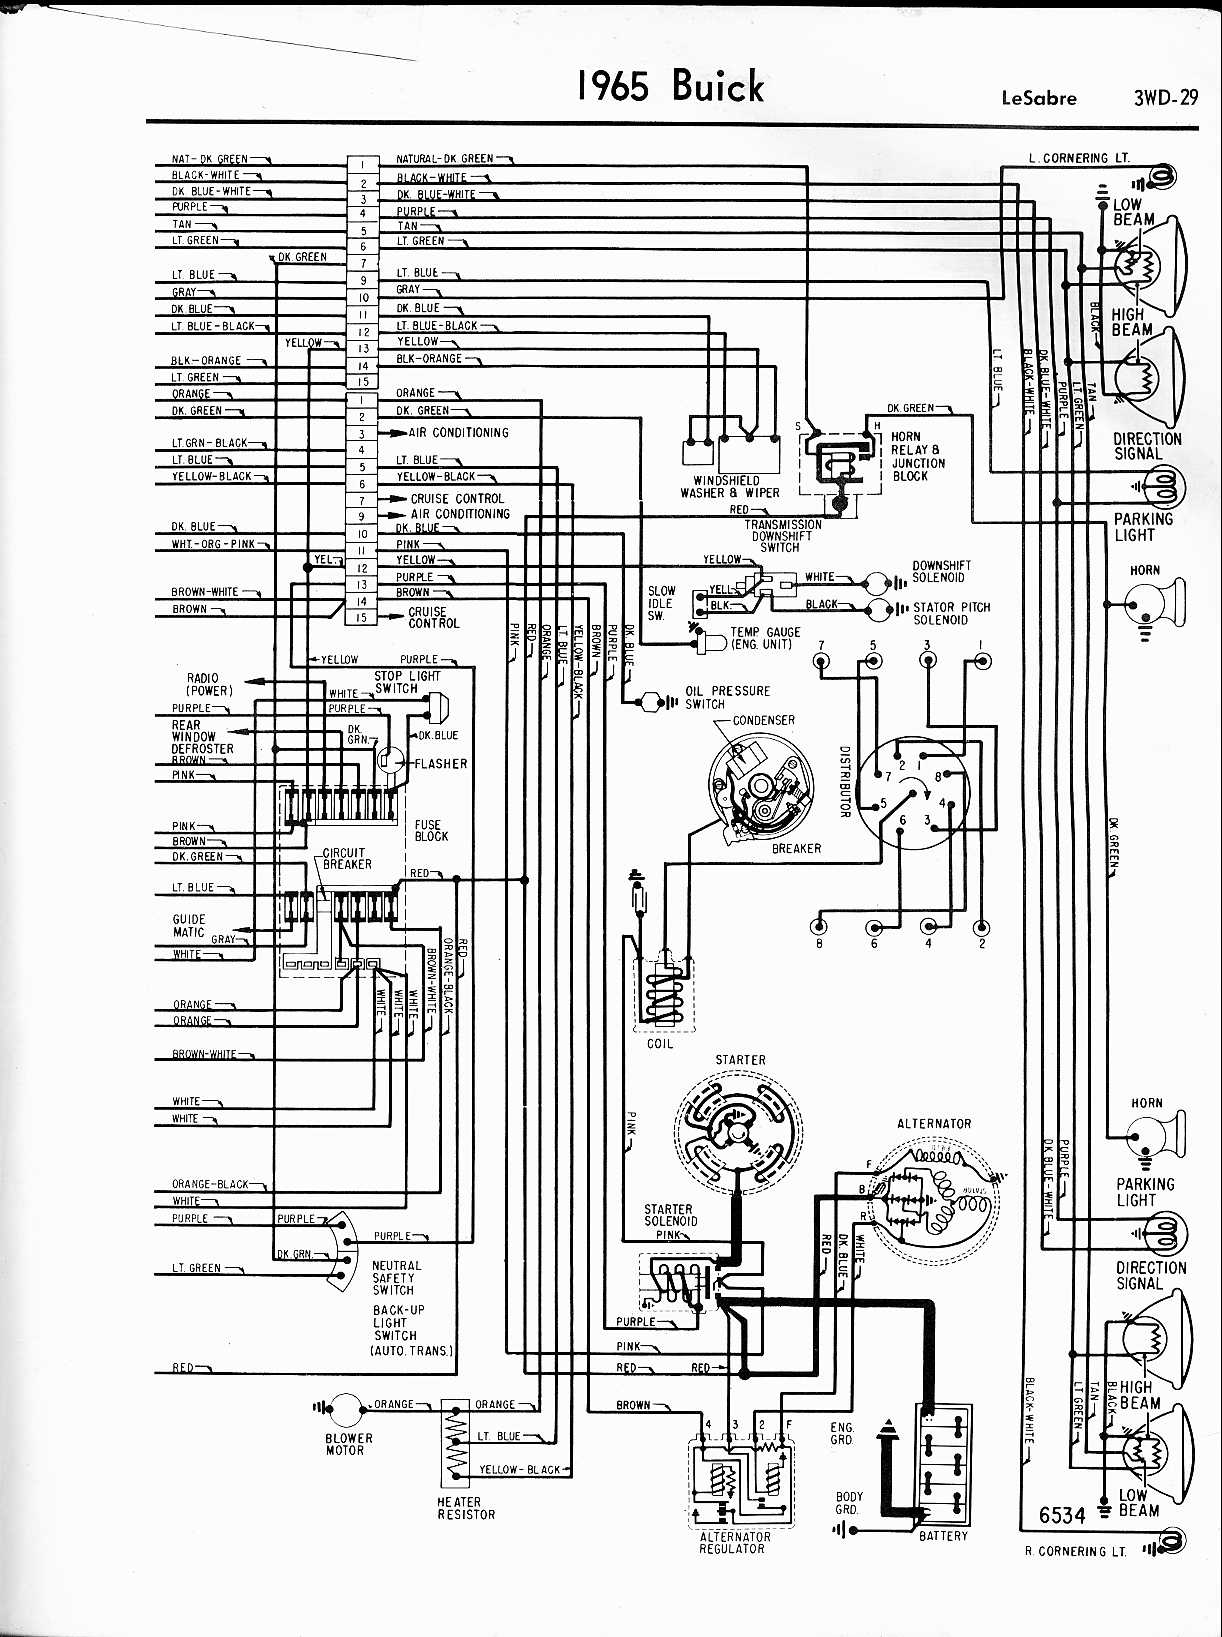 Buick Starter Generator Wiring Diagram Archive Of Automotive Vw Bug Diagrams 1957 1965 Rh Oldcarmanualproject Com